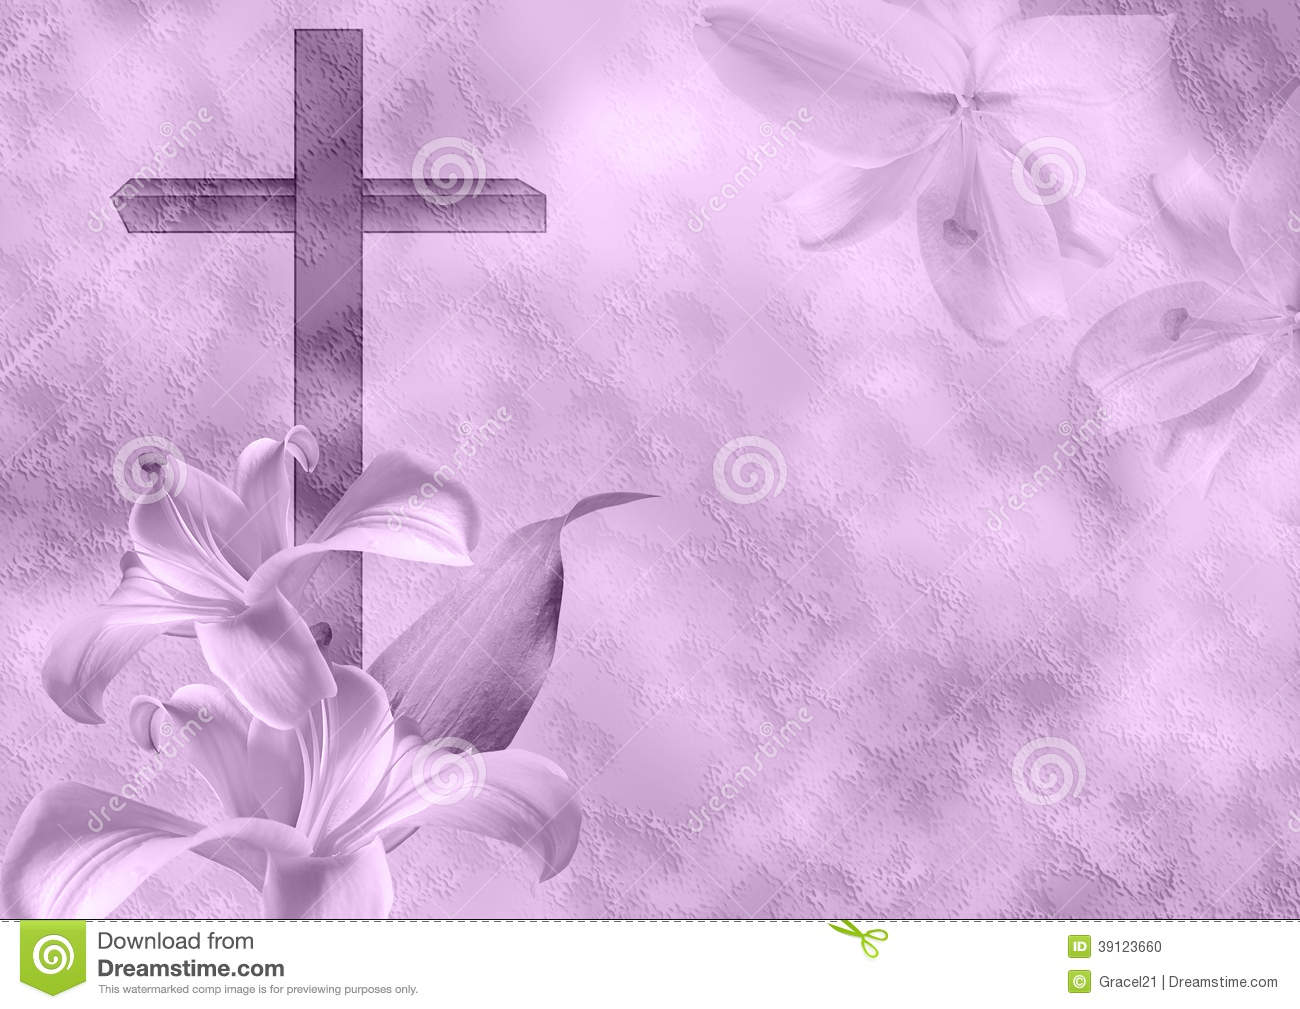 jesus wallpaper with flower wallpapersafari jesus clip art free images jesus clipart images black and white